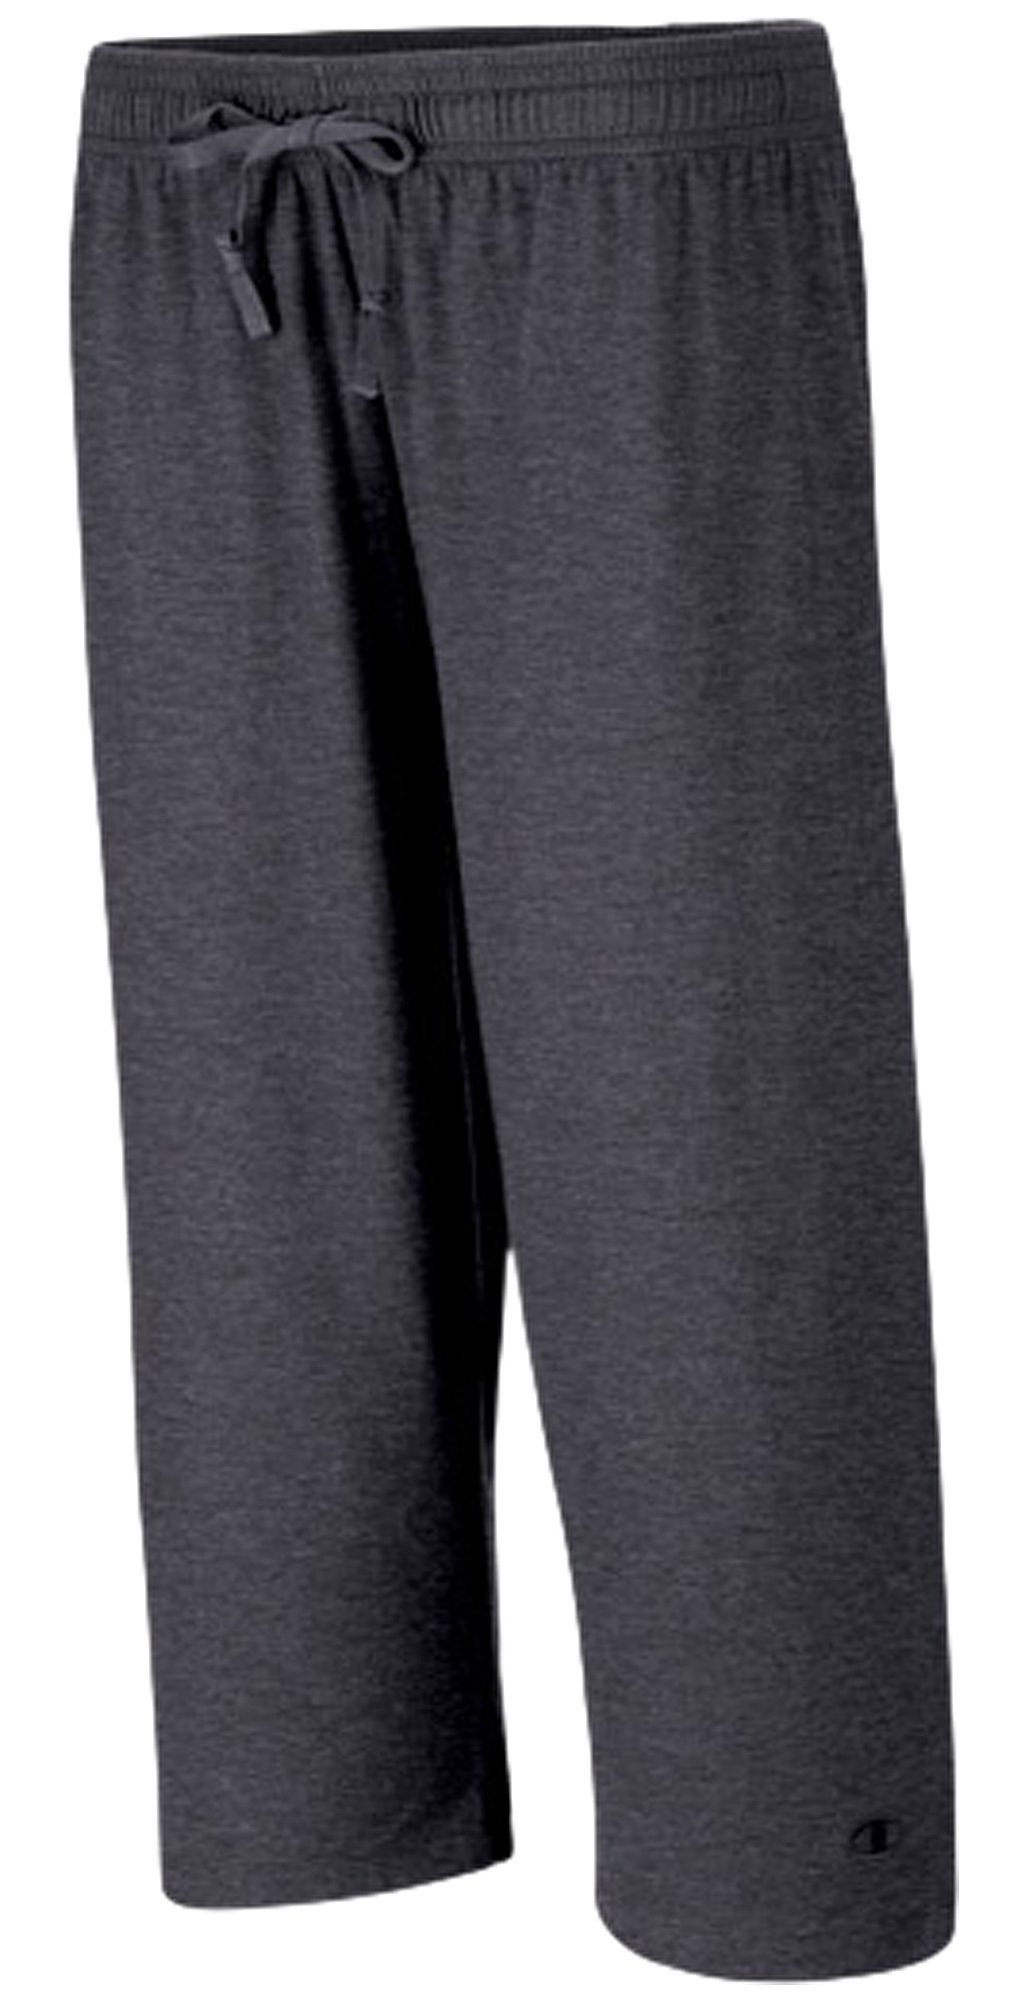 Champion Womens Activewear Capris | eBay